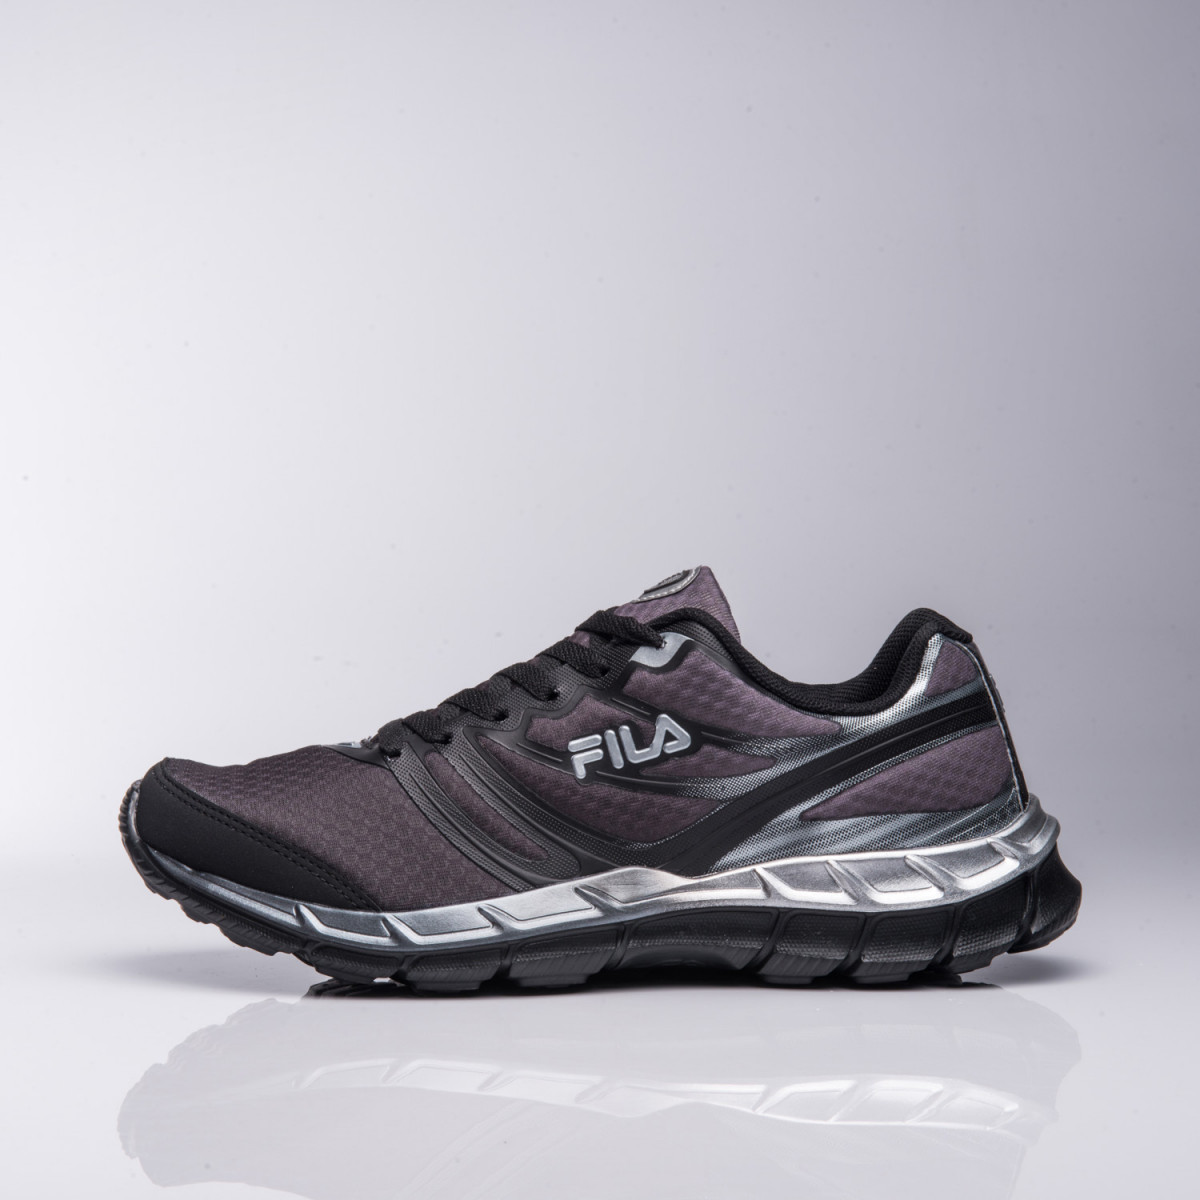 ZAPATILLAS FILA COMFORT FIT